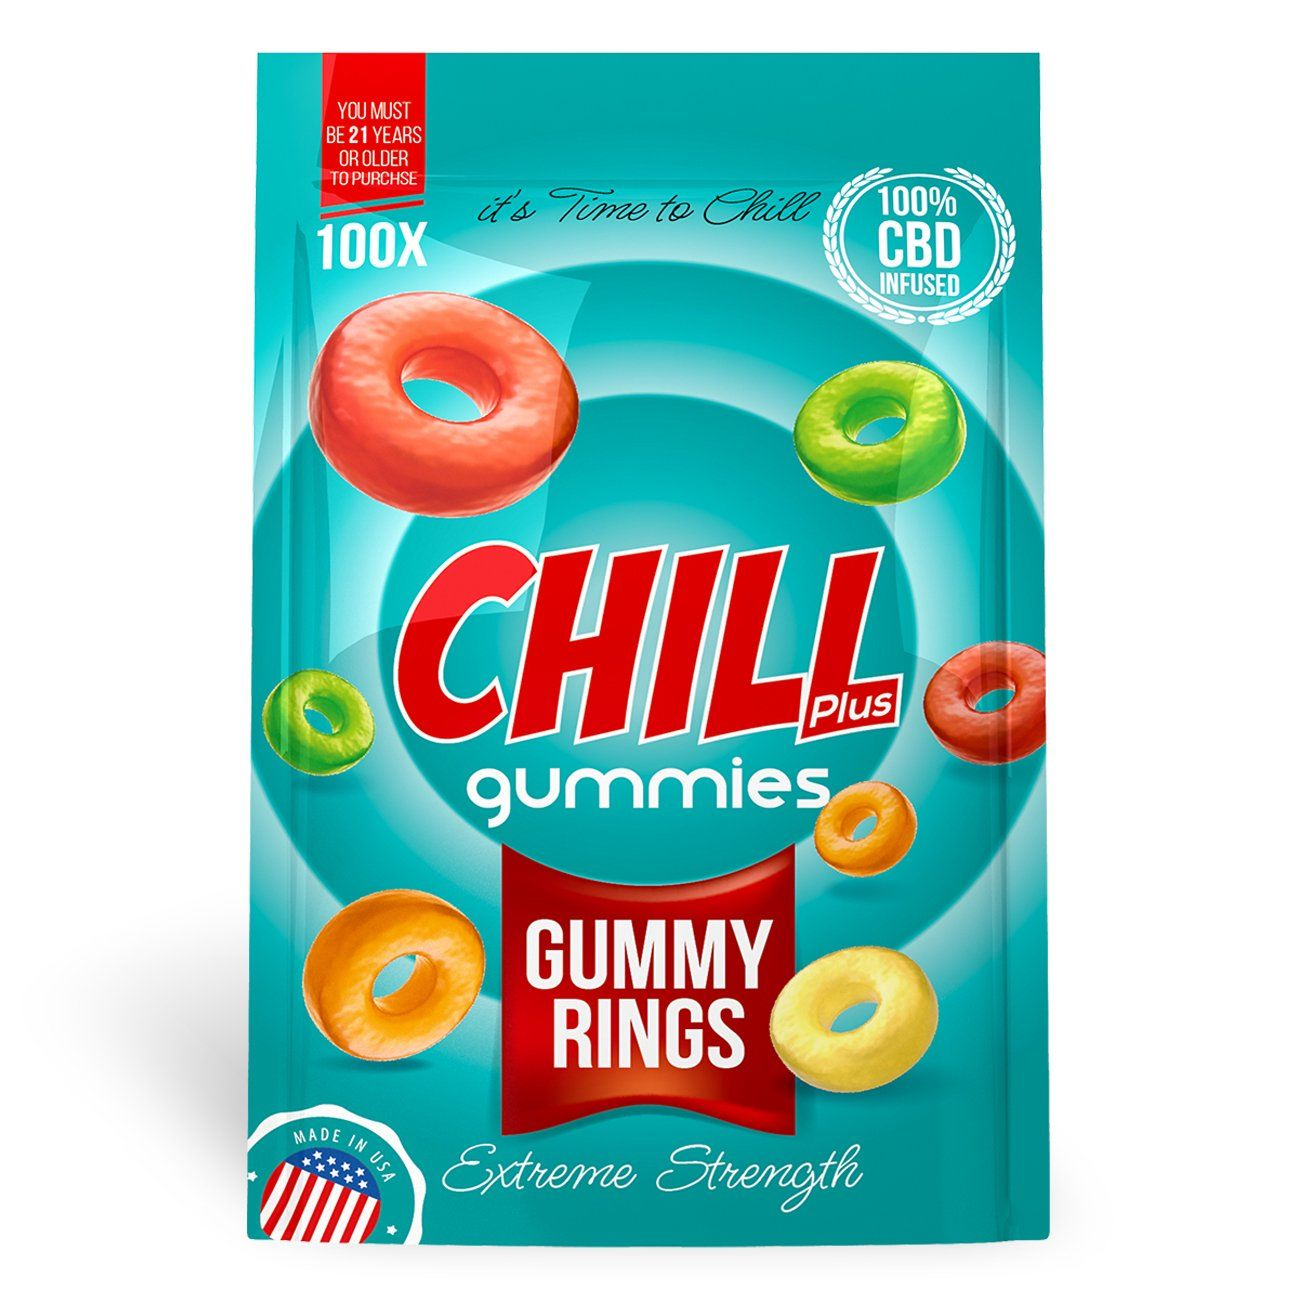 Chill Plus Gummies - CBD Infused Gummy Rings [Edible Candy] - My CBD Mall